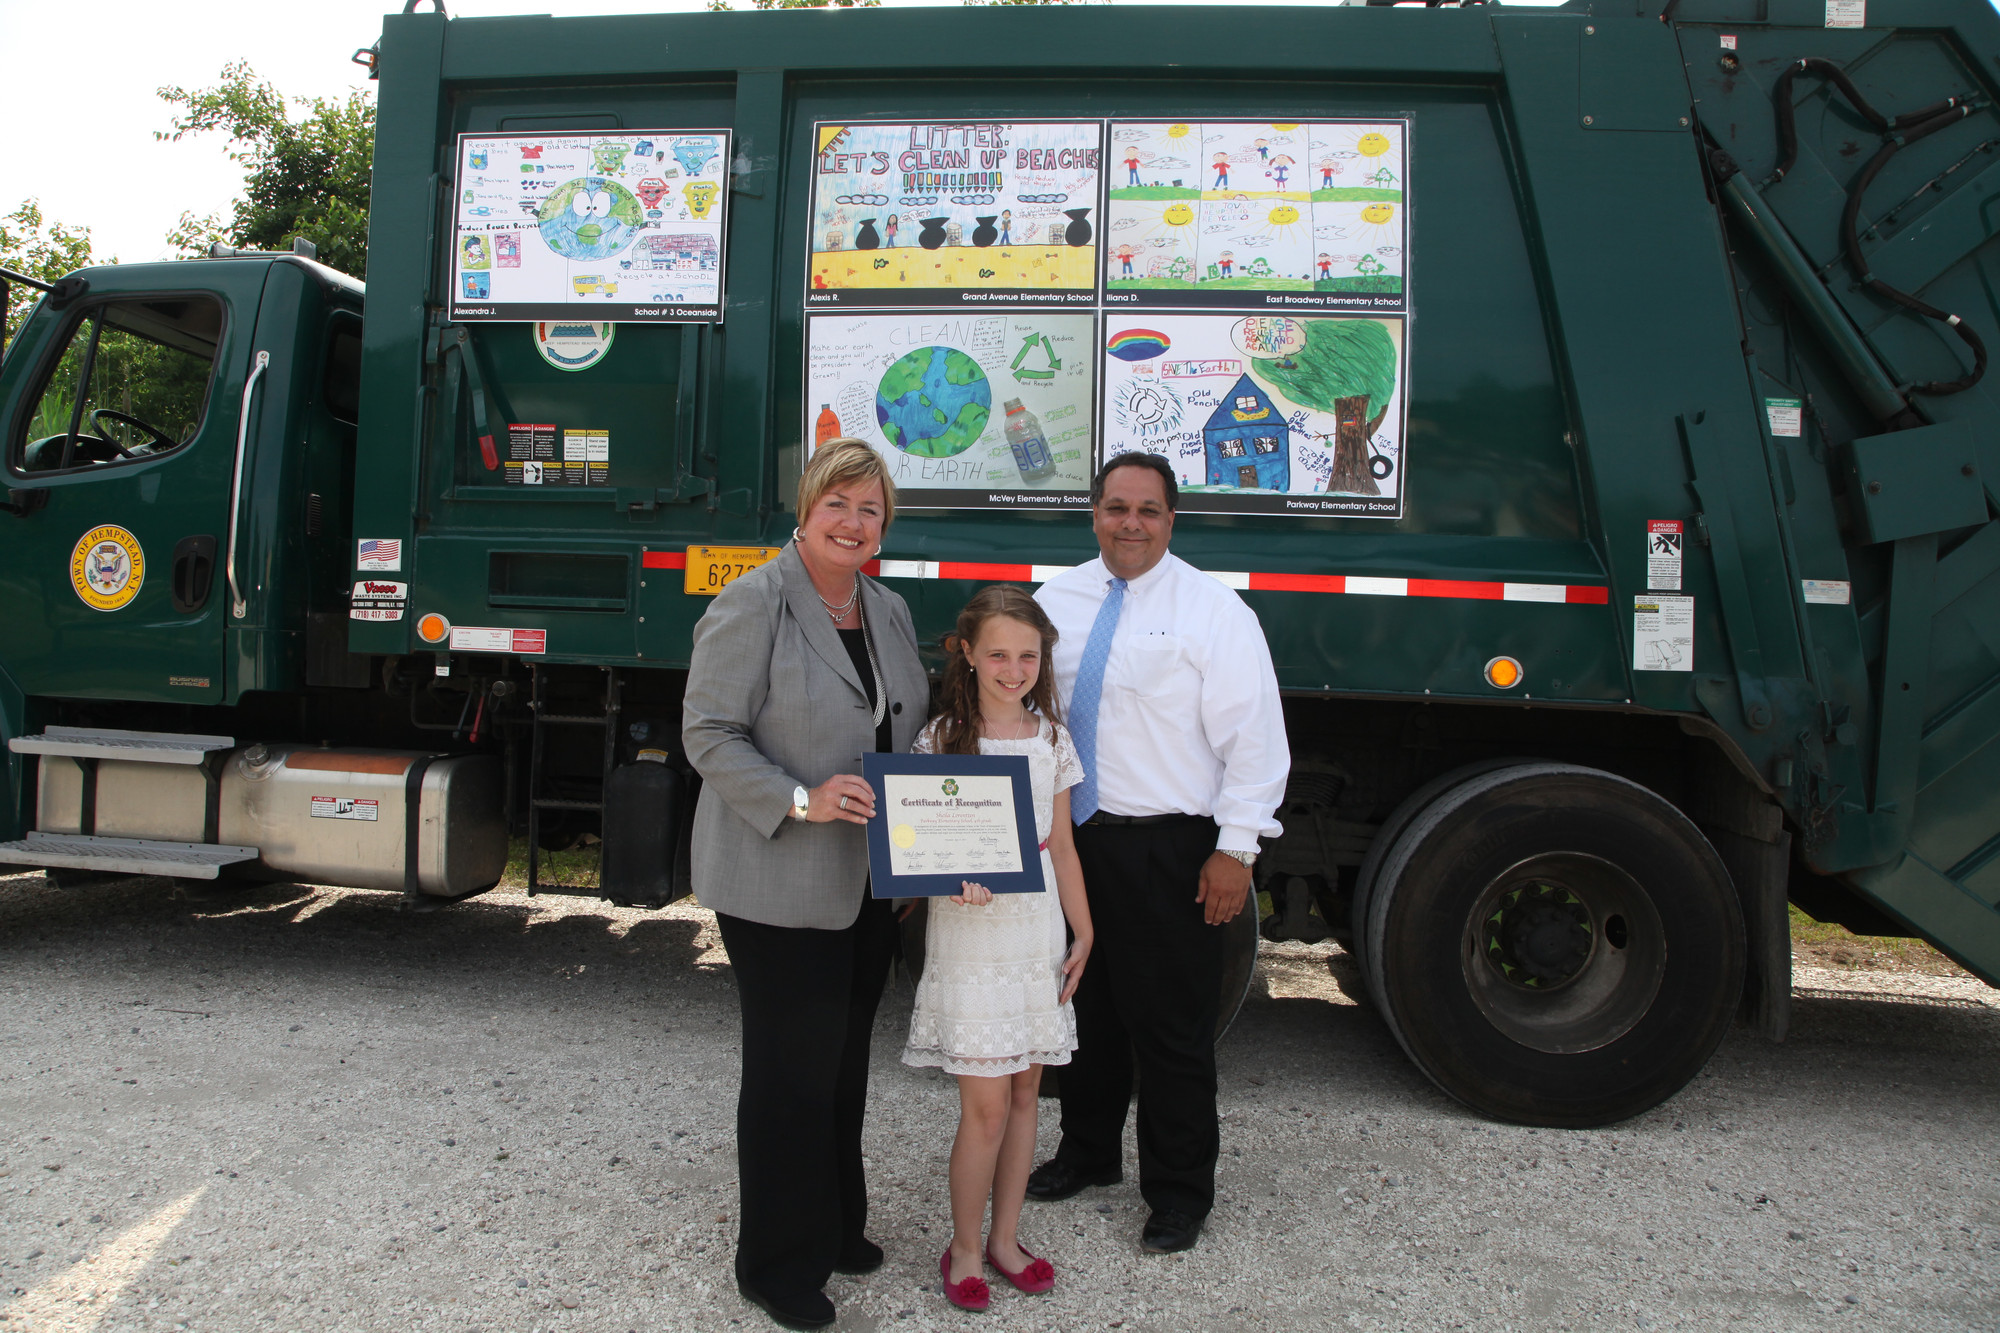 Sheila Lorentzen, of Parkway Elementary School, with Supervisor Murray and Anthony Core of Westbury Paper Stock.